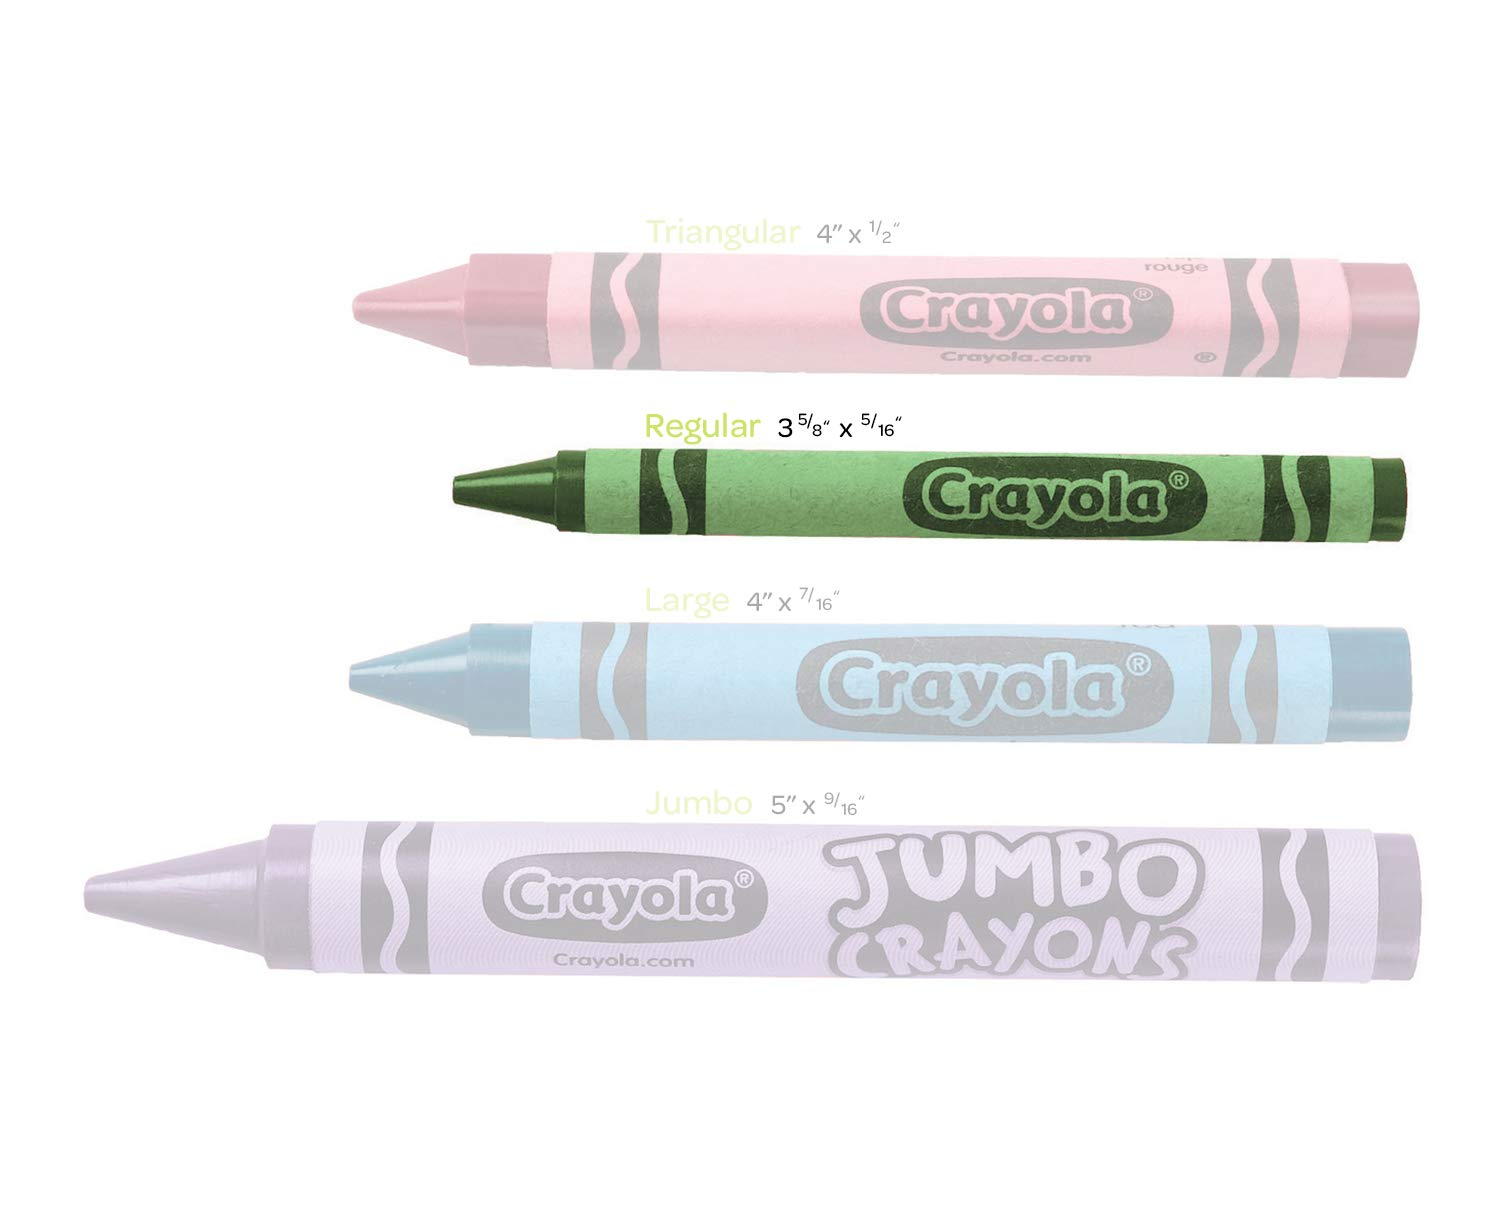 400 Count 8 Classic Crayola Colors Bulk Pack Is Great for Kids Classrooms or Preschools Crayola Crayon Classpack Large Size Non-Toxic Art Tools for Kids /& Toddlers 3 /& Up